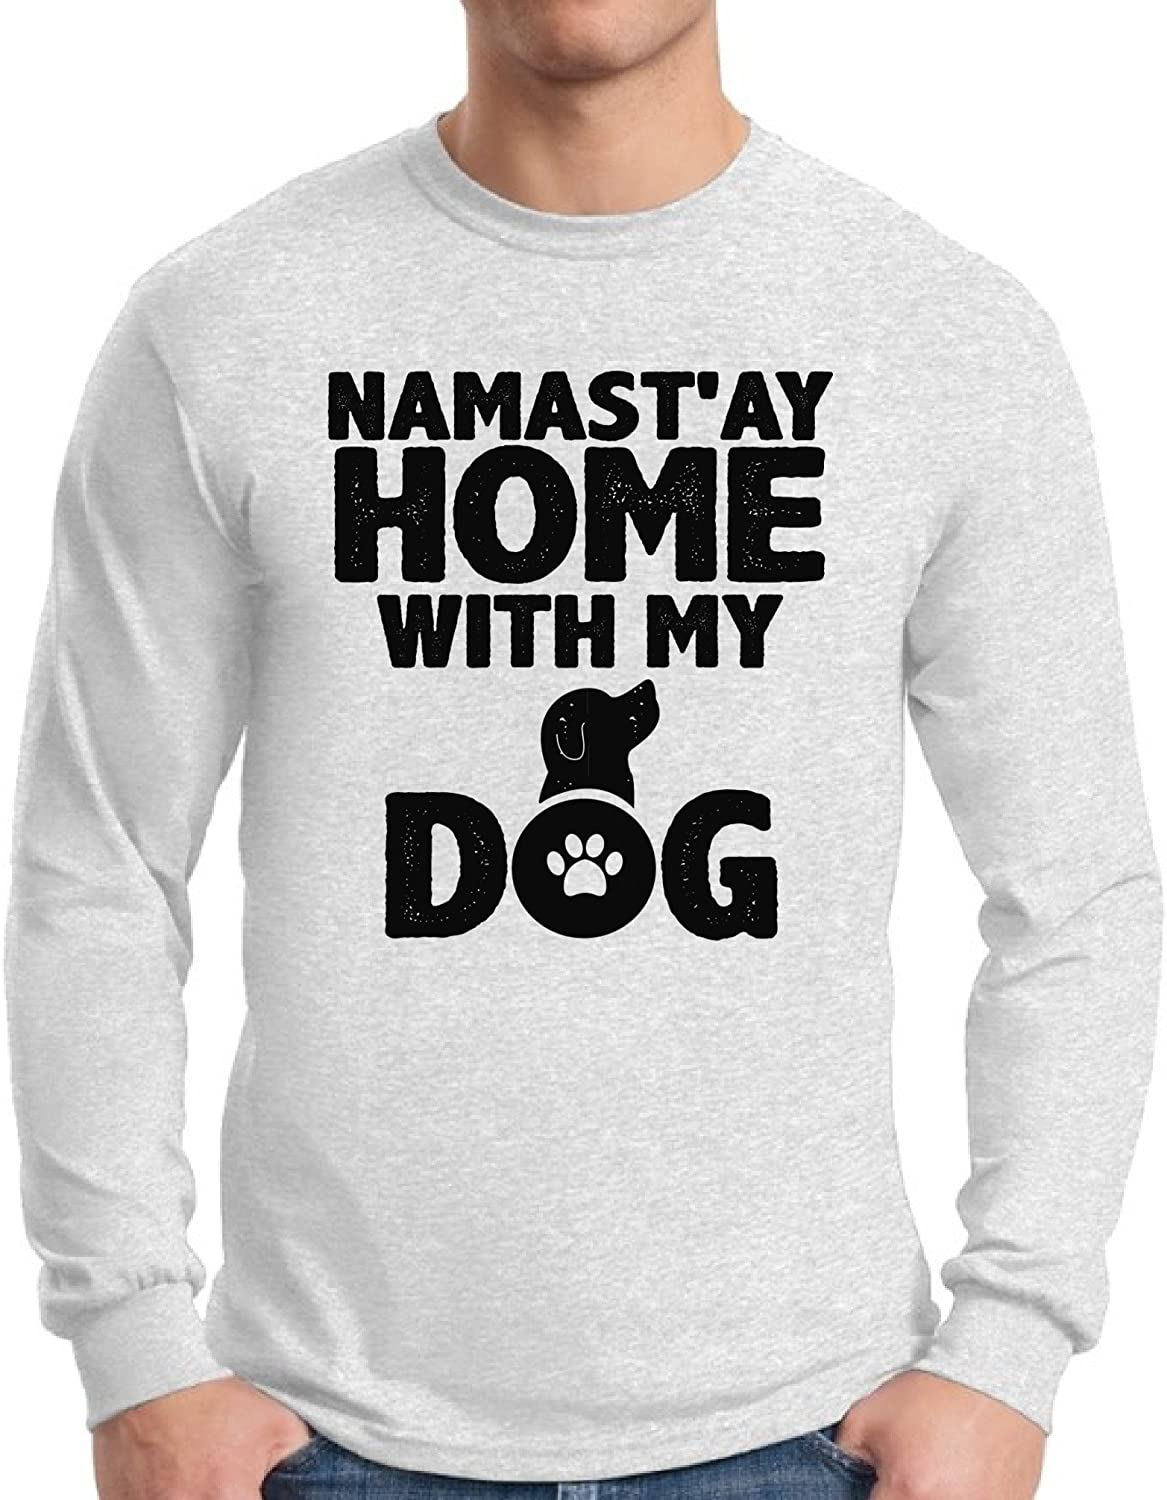 The Best Namastay Home With My Dog Shirt